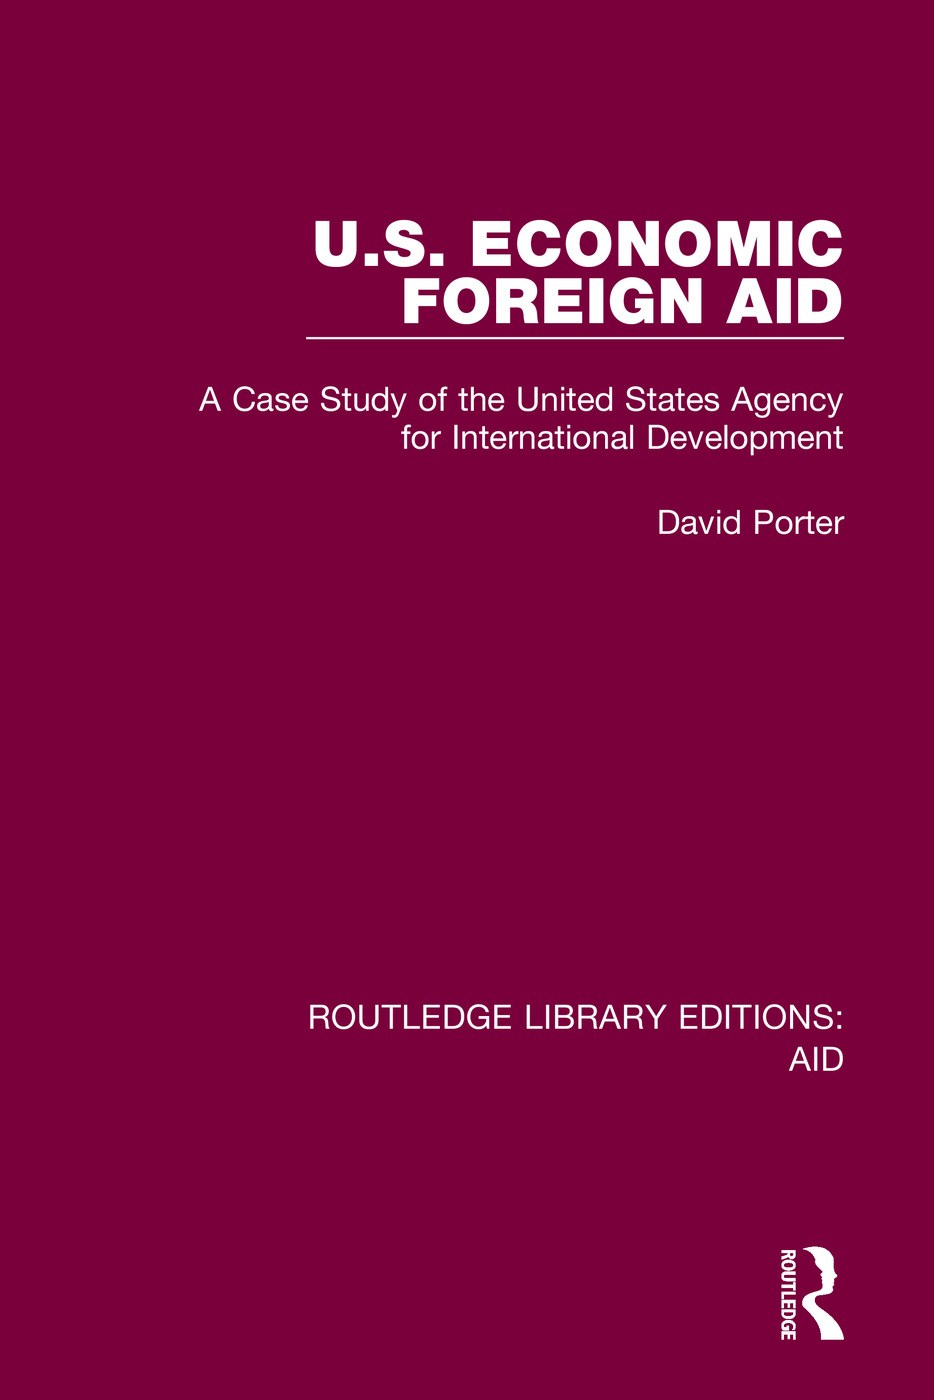 U.S. Economic Foreign Aid: A Case Study of the United States Agency for International Development, 1st Edition (Hardback) book cover